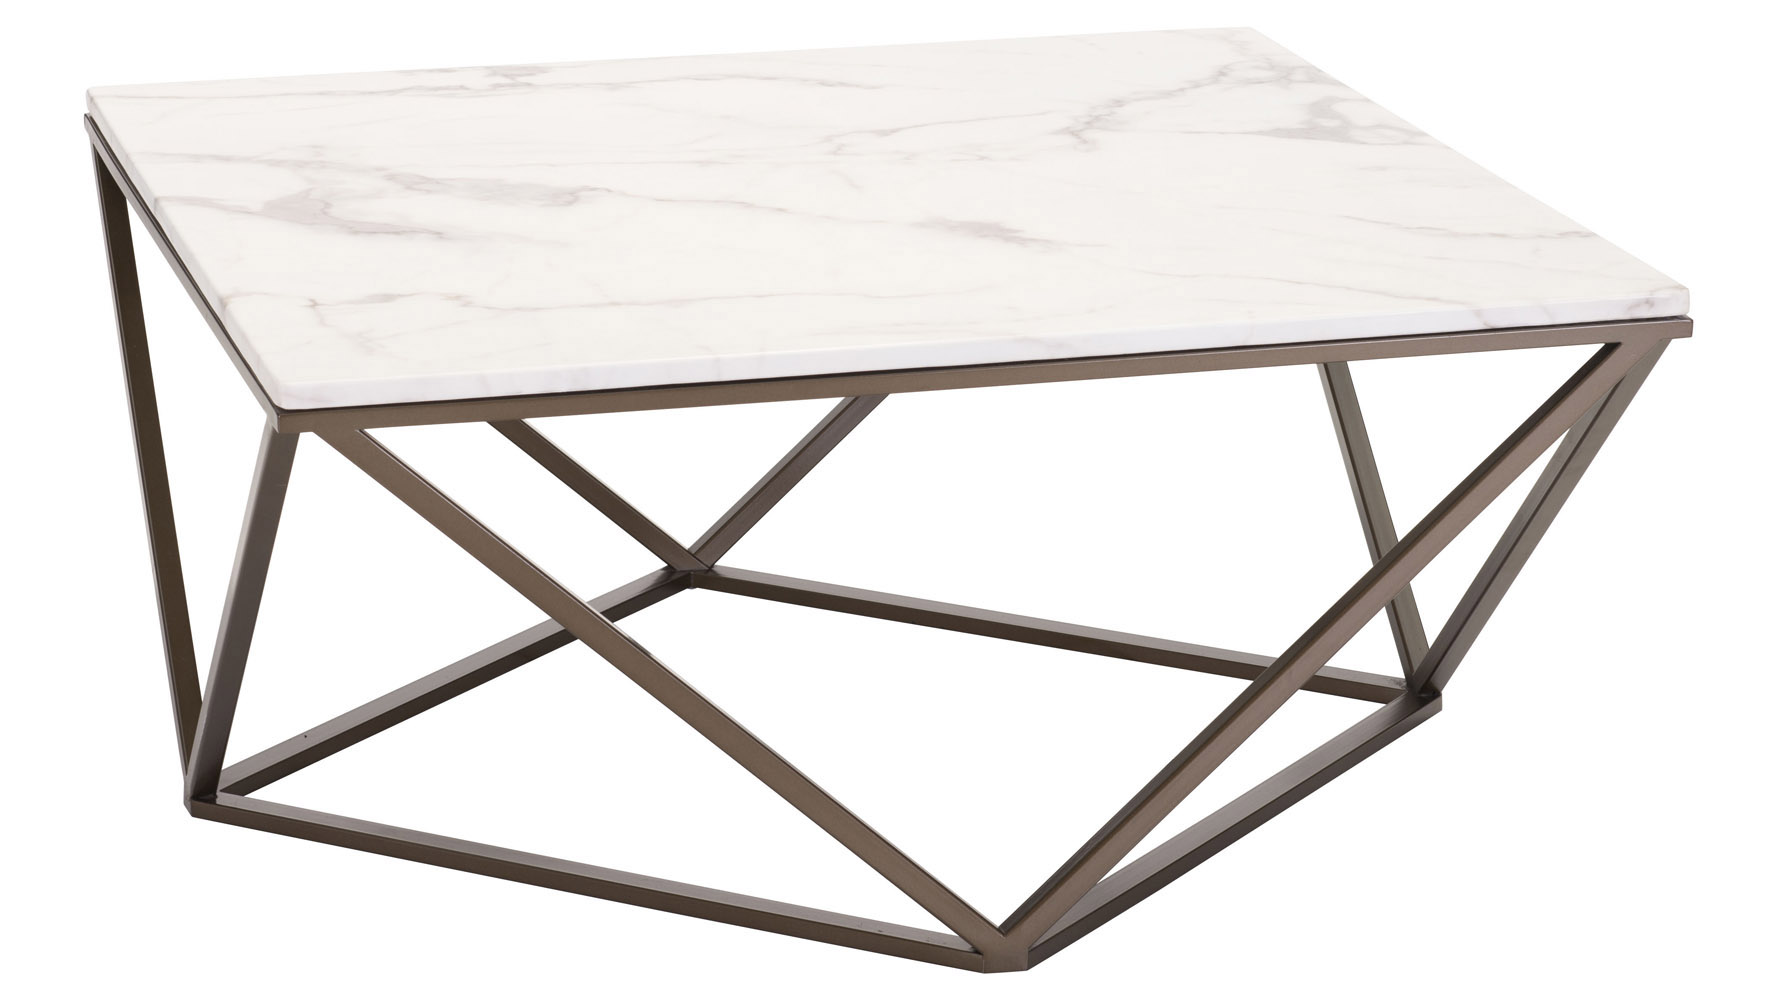 Klee faux marble coffee table stone antique brass zuri furniture mouse over image to zoom or click to view larger geotapseo Choice Image